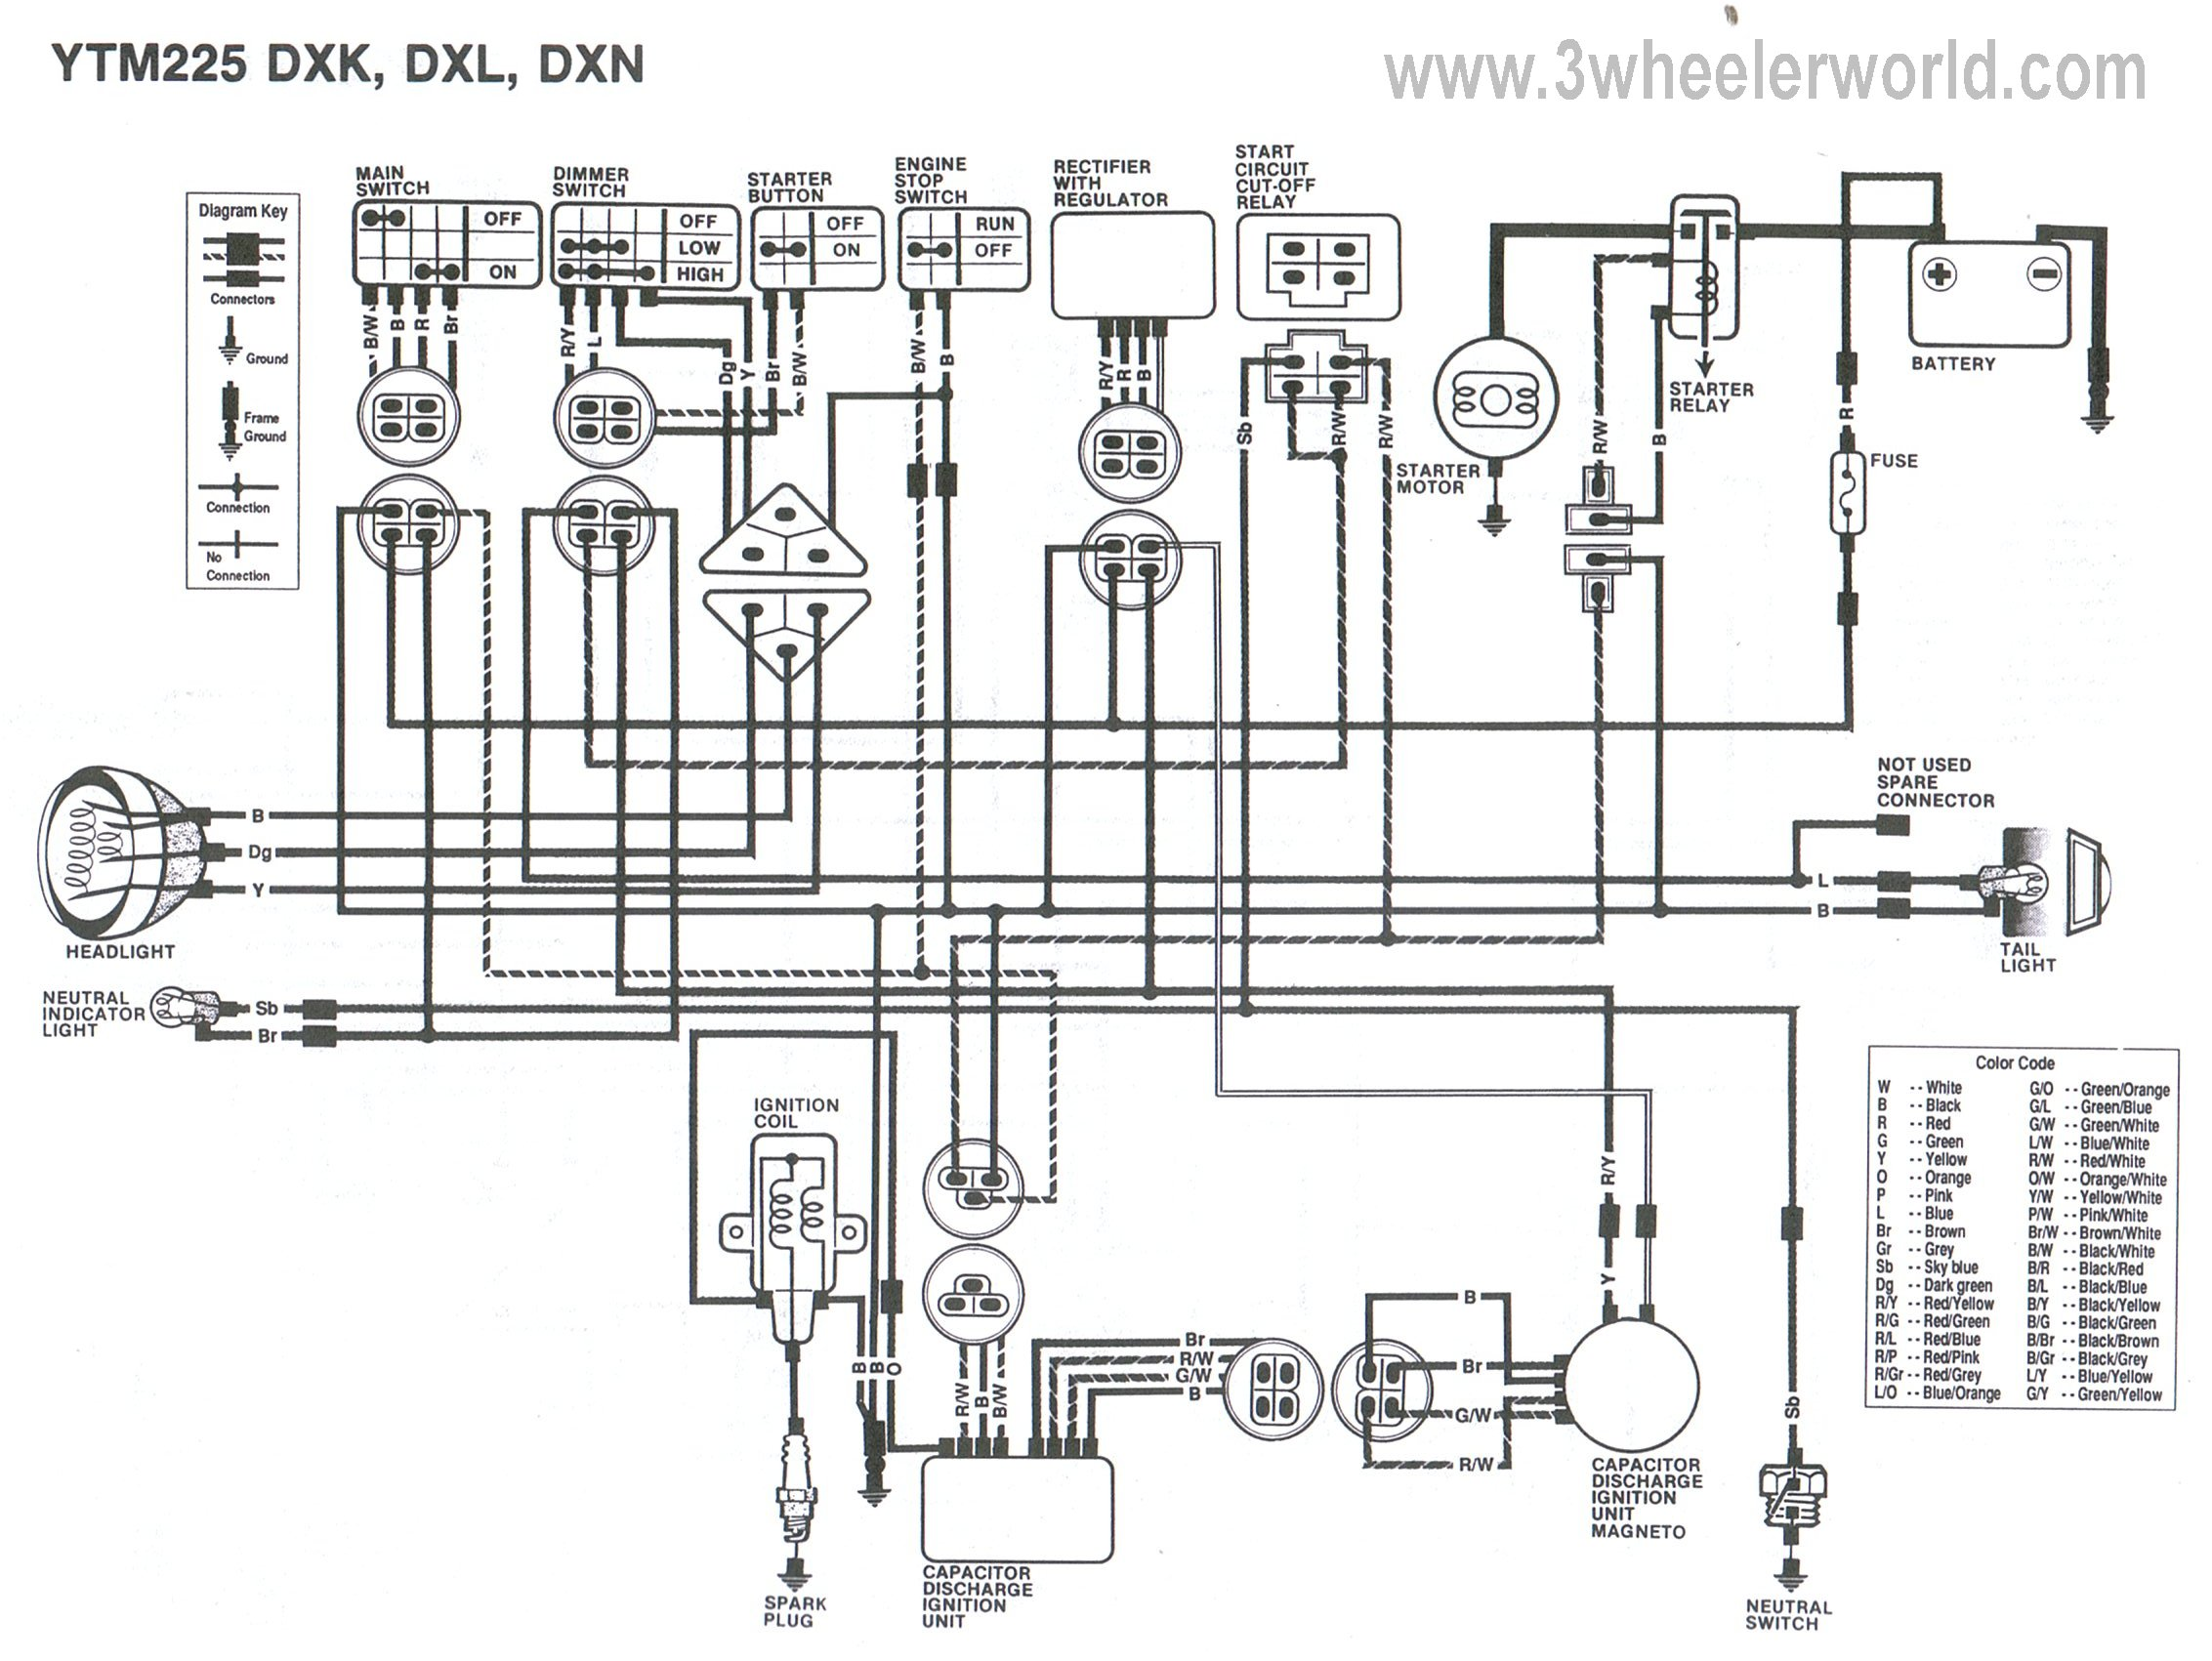 YTM225DXKDXLDXN 3 wheeler world tech help yamaha wiring diagrams 1984 honda big red 200es wiring diagram at sewacar.co